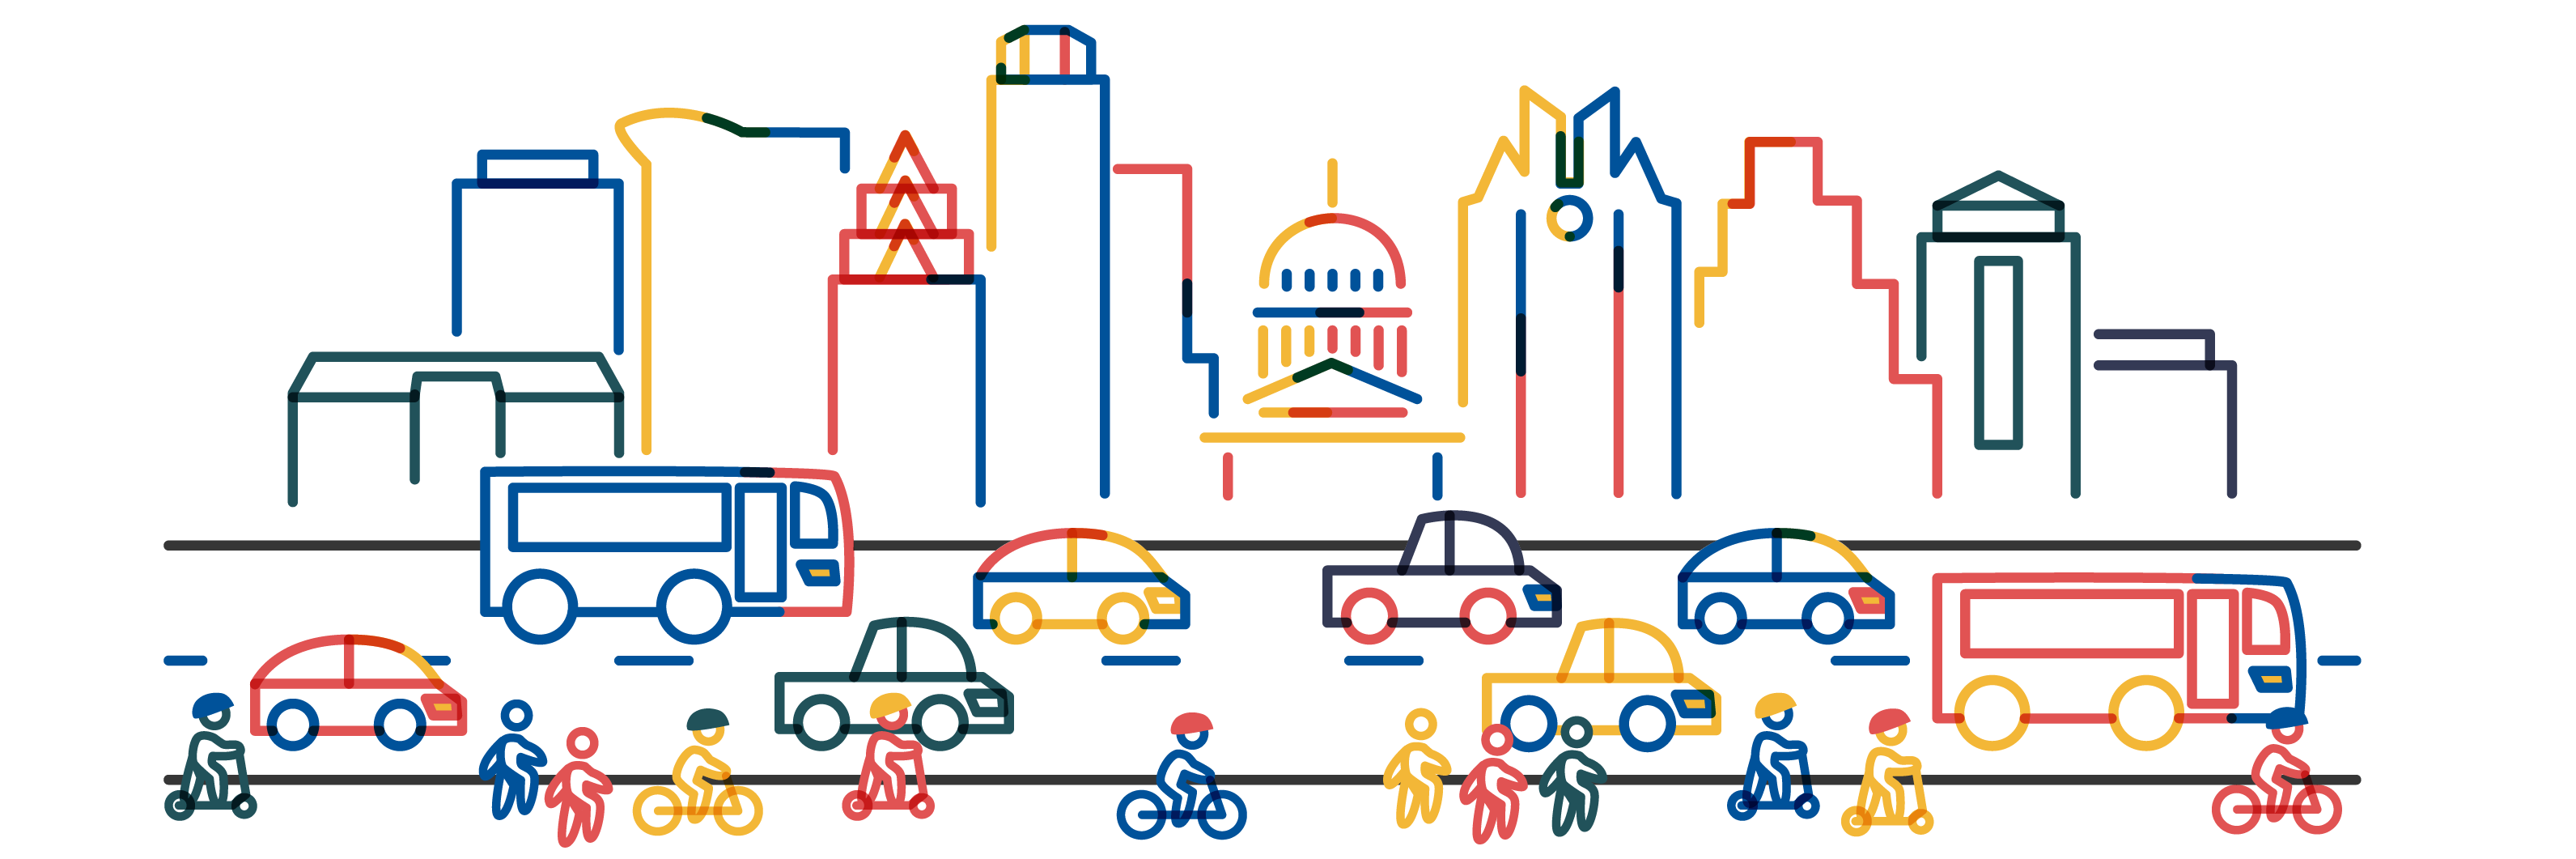 Illustration of Austin skyline, with people traveling by bus, car, bike, scooter, and foot in the foreground.